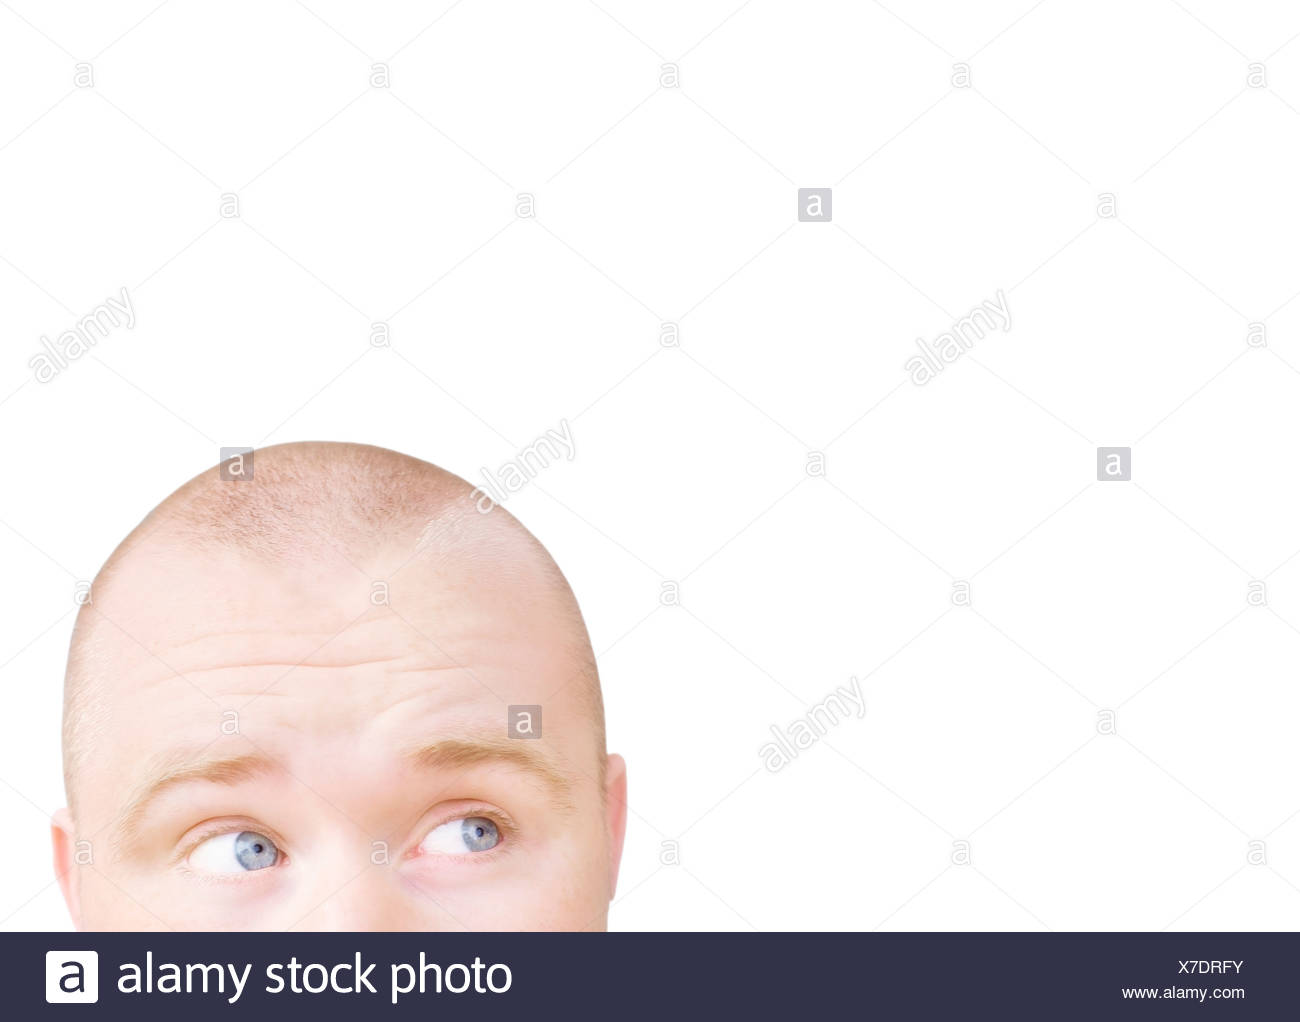 Part of a man's head looking sideways - Stock Image